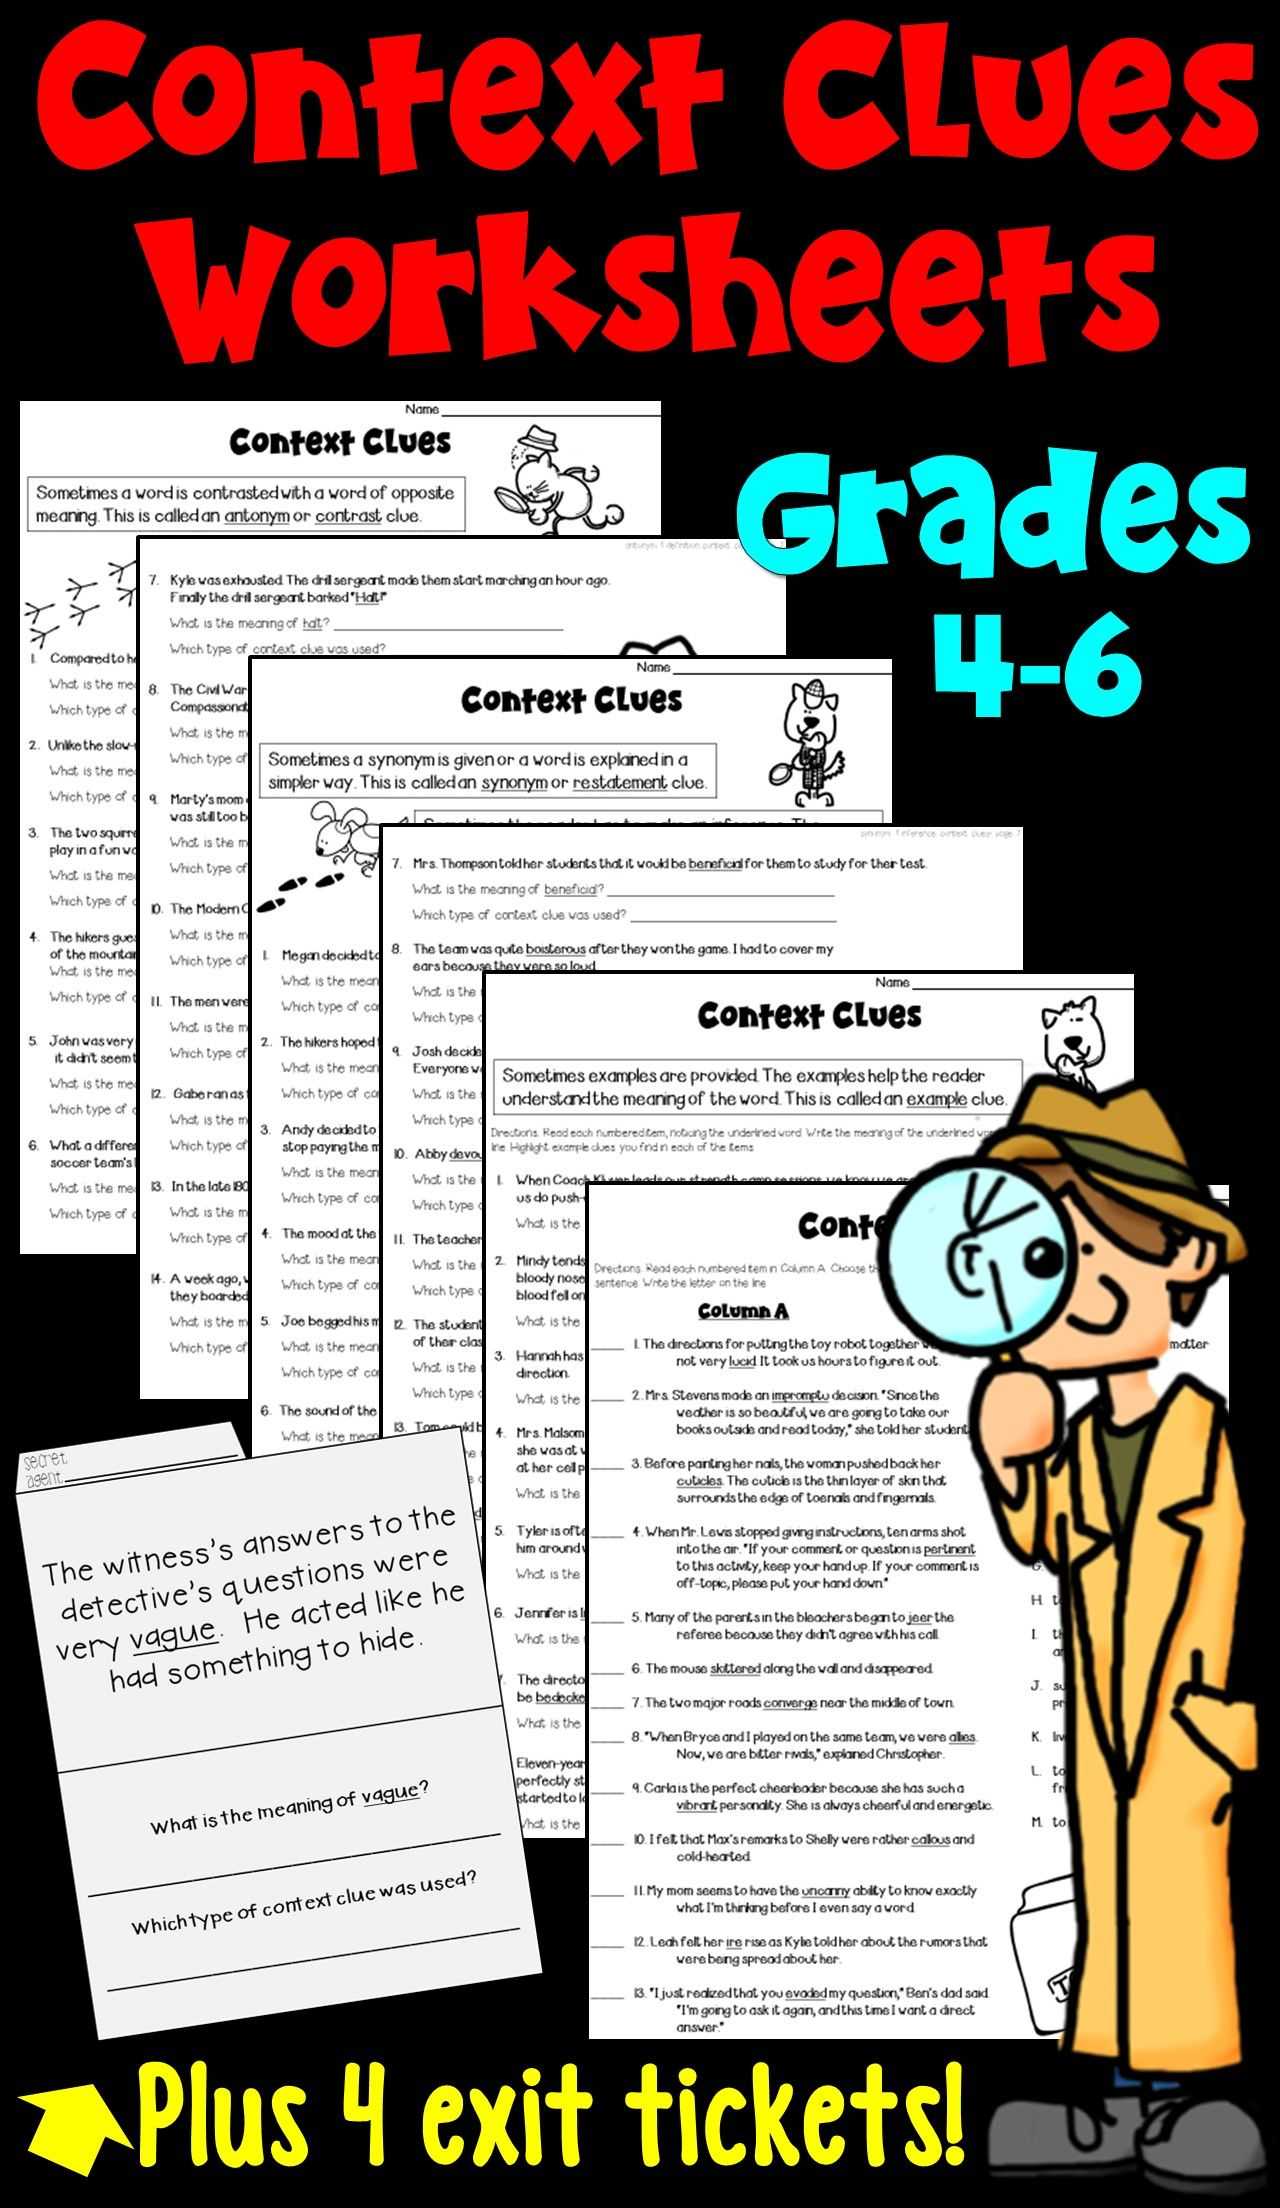 Context Clues Worksheets And Exit Tickets Focusing On 5